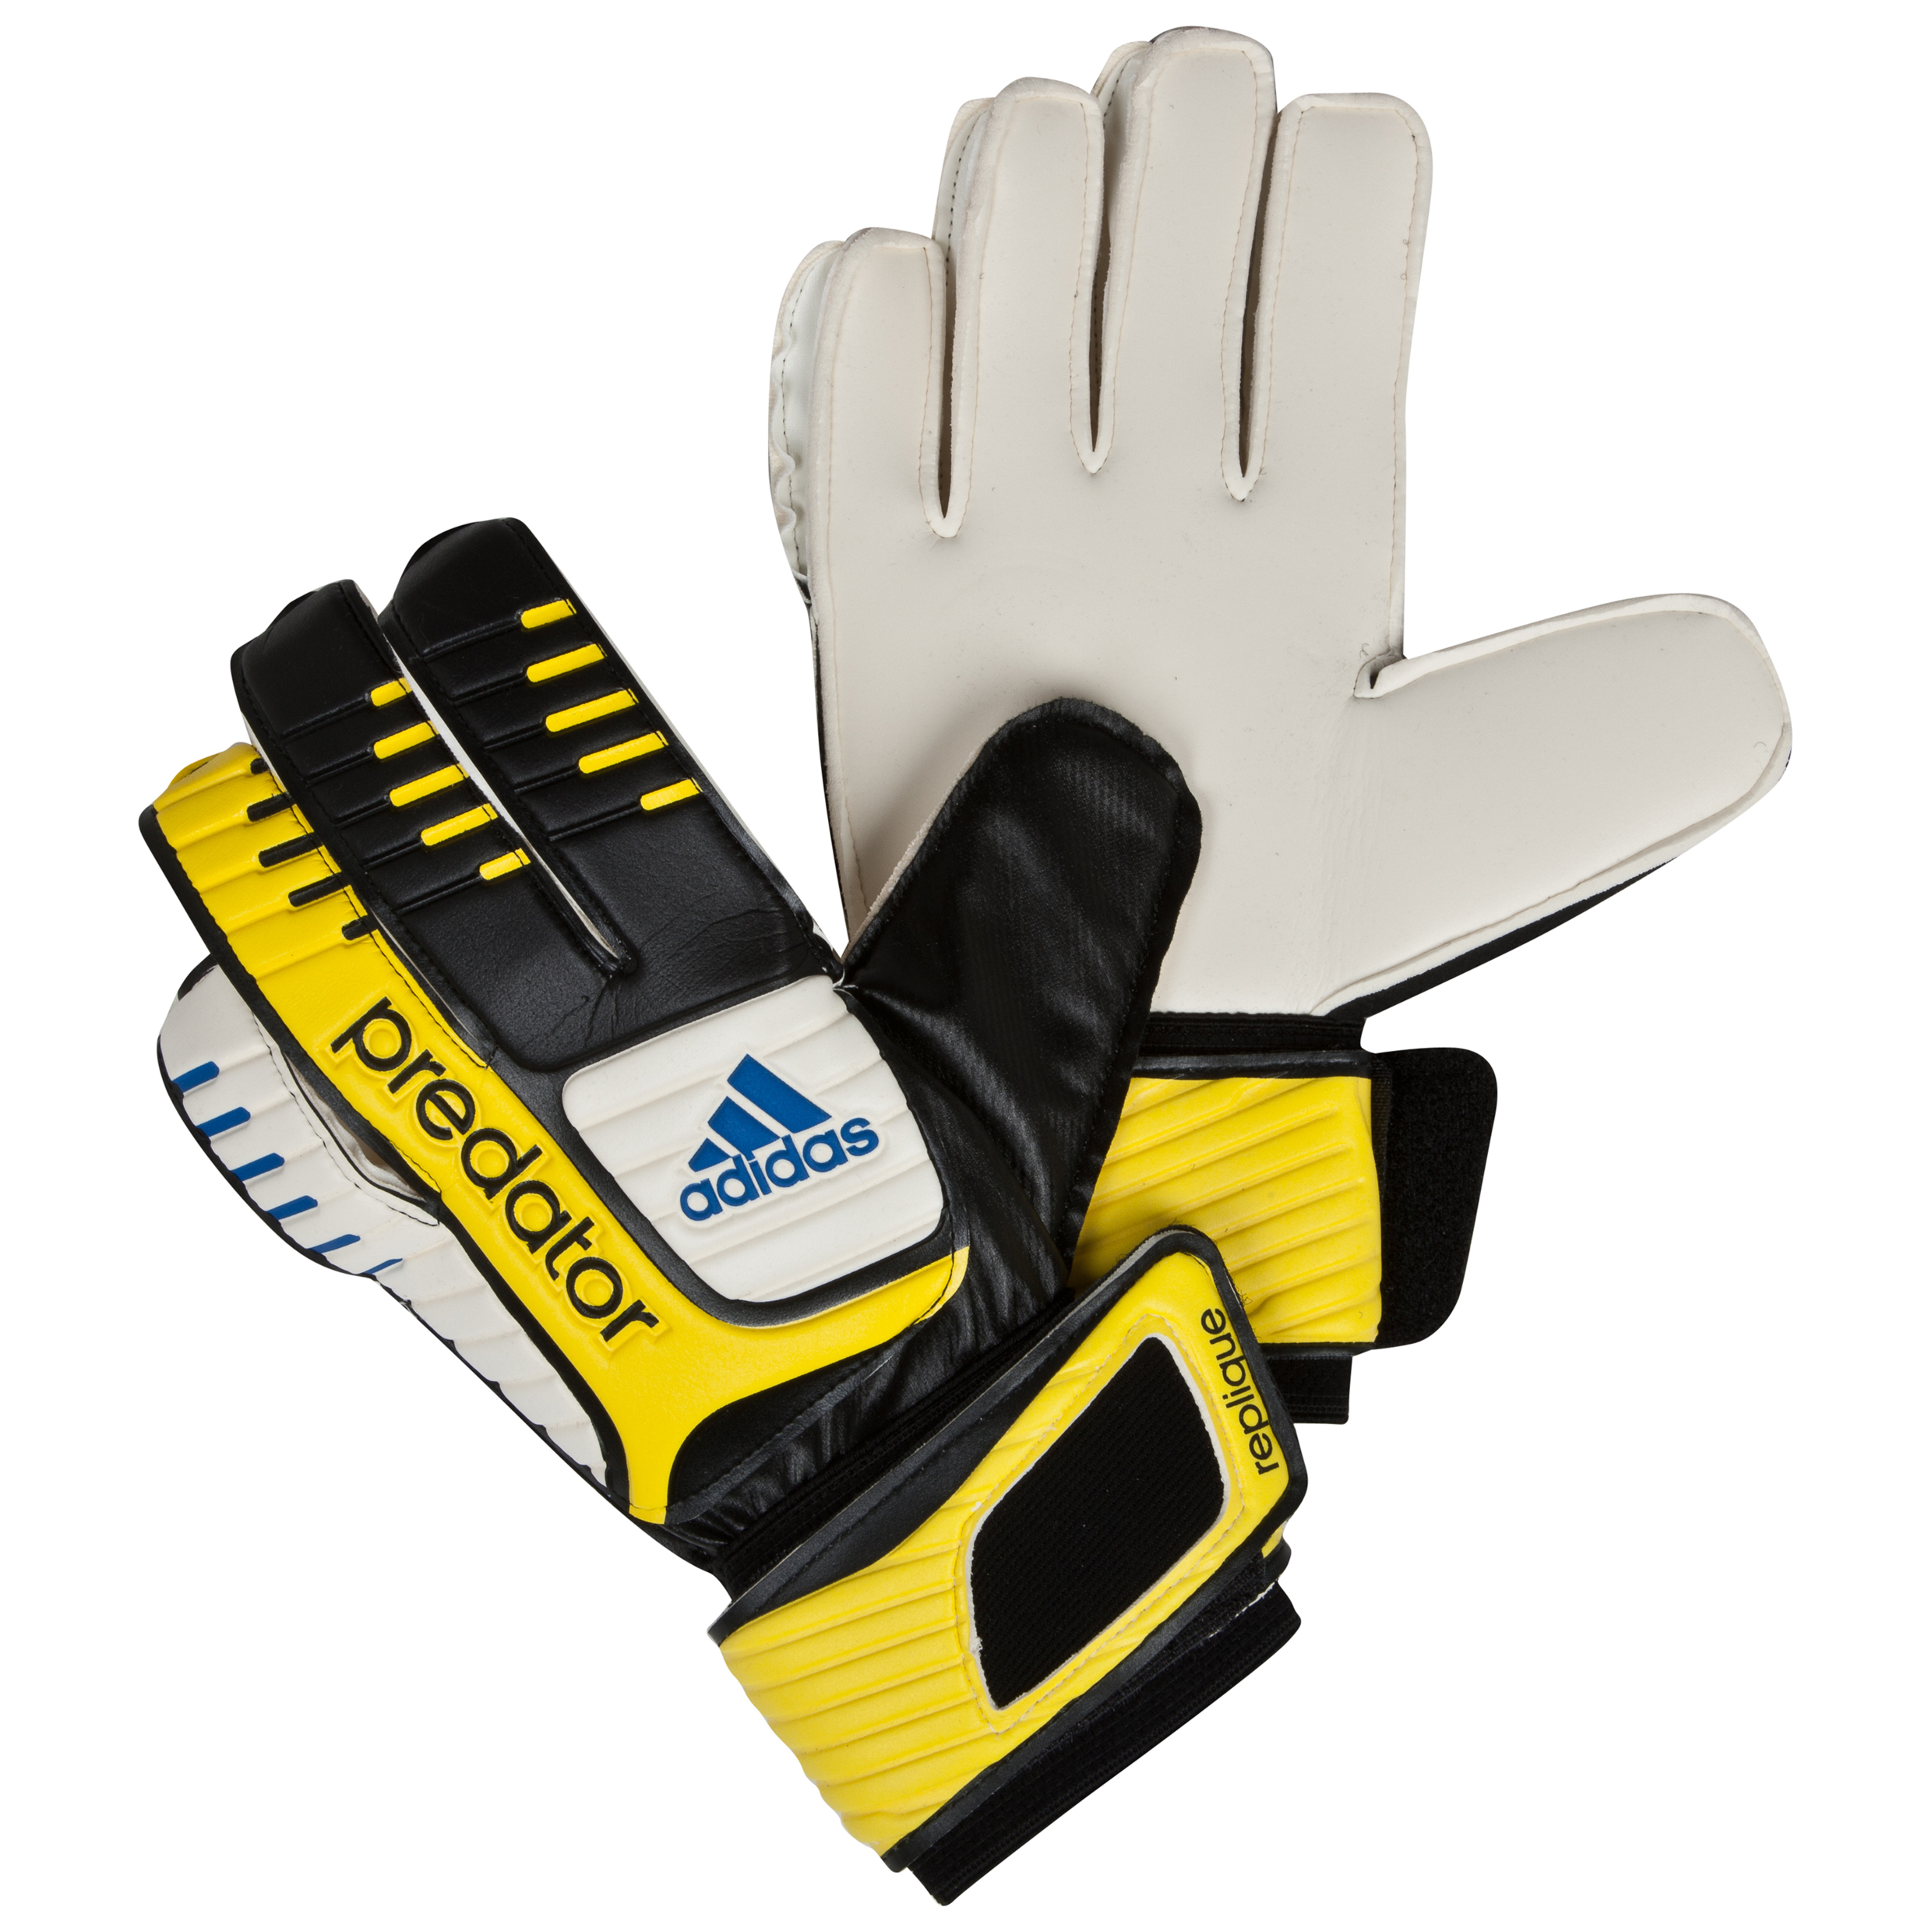 adidas Predator Replique Goalkeeper Gloves - Black/White/Vivid Yellow /Prime Blue